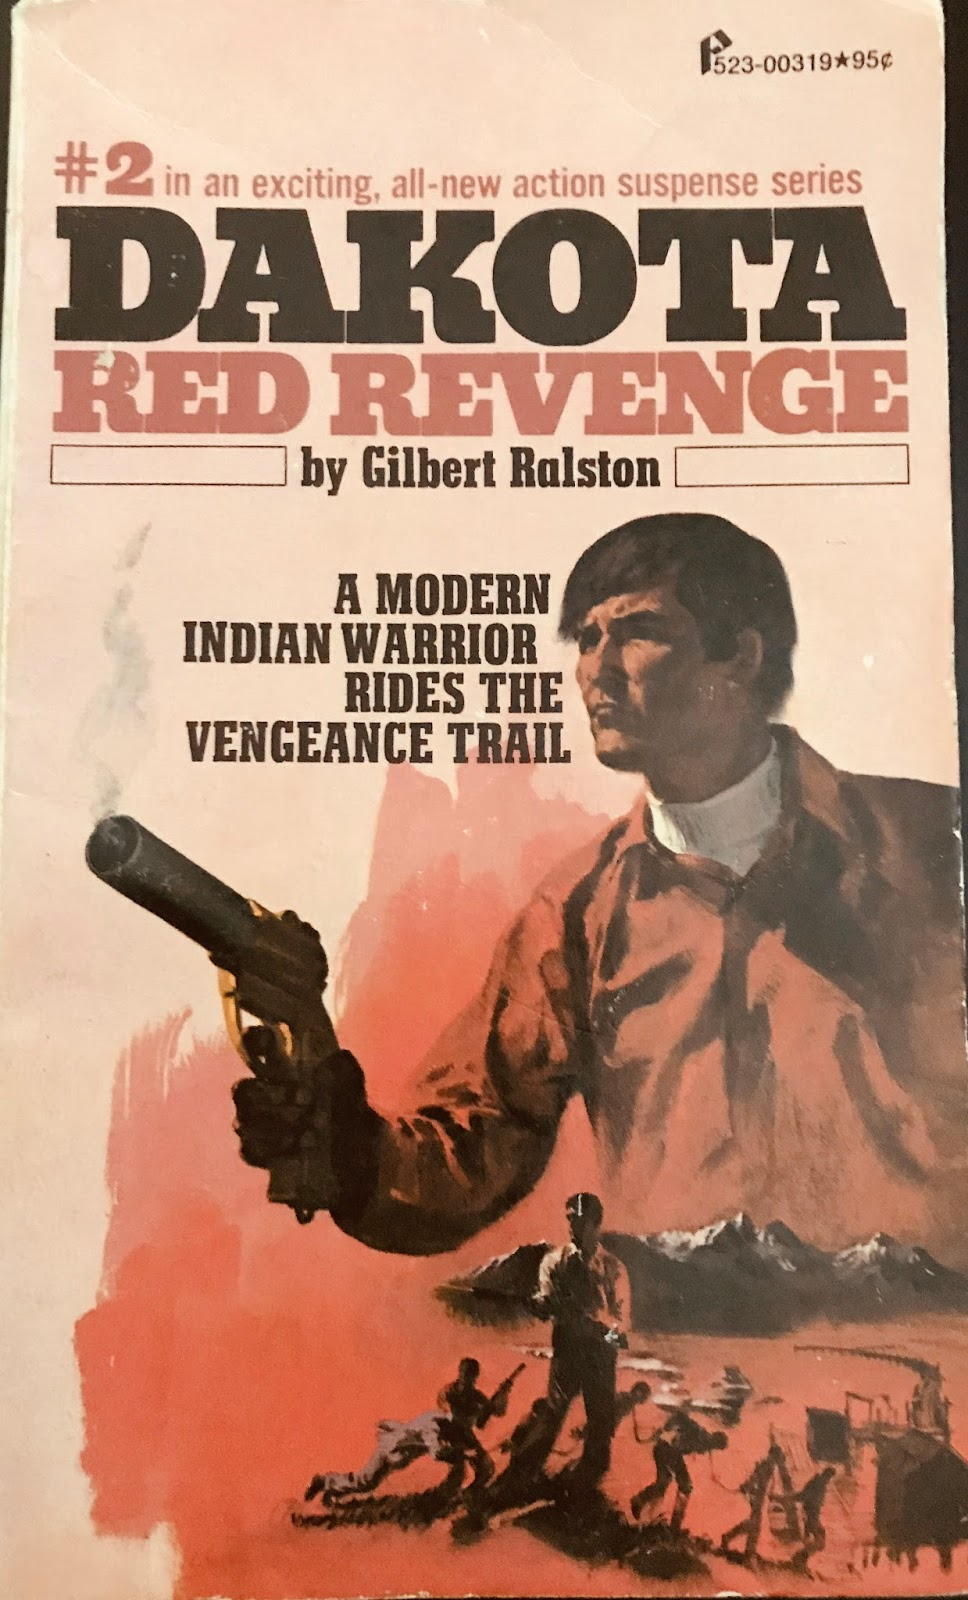 Paperback warrior march 2018 red revenge is another top notch effort from author gilbert ralston it was released in 1974 through the popular pinnacle adventure line and marks the fandeluxe